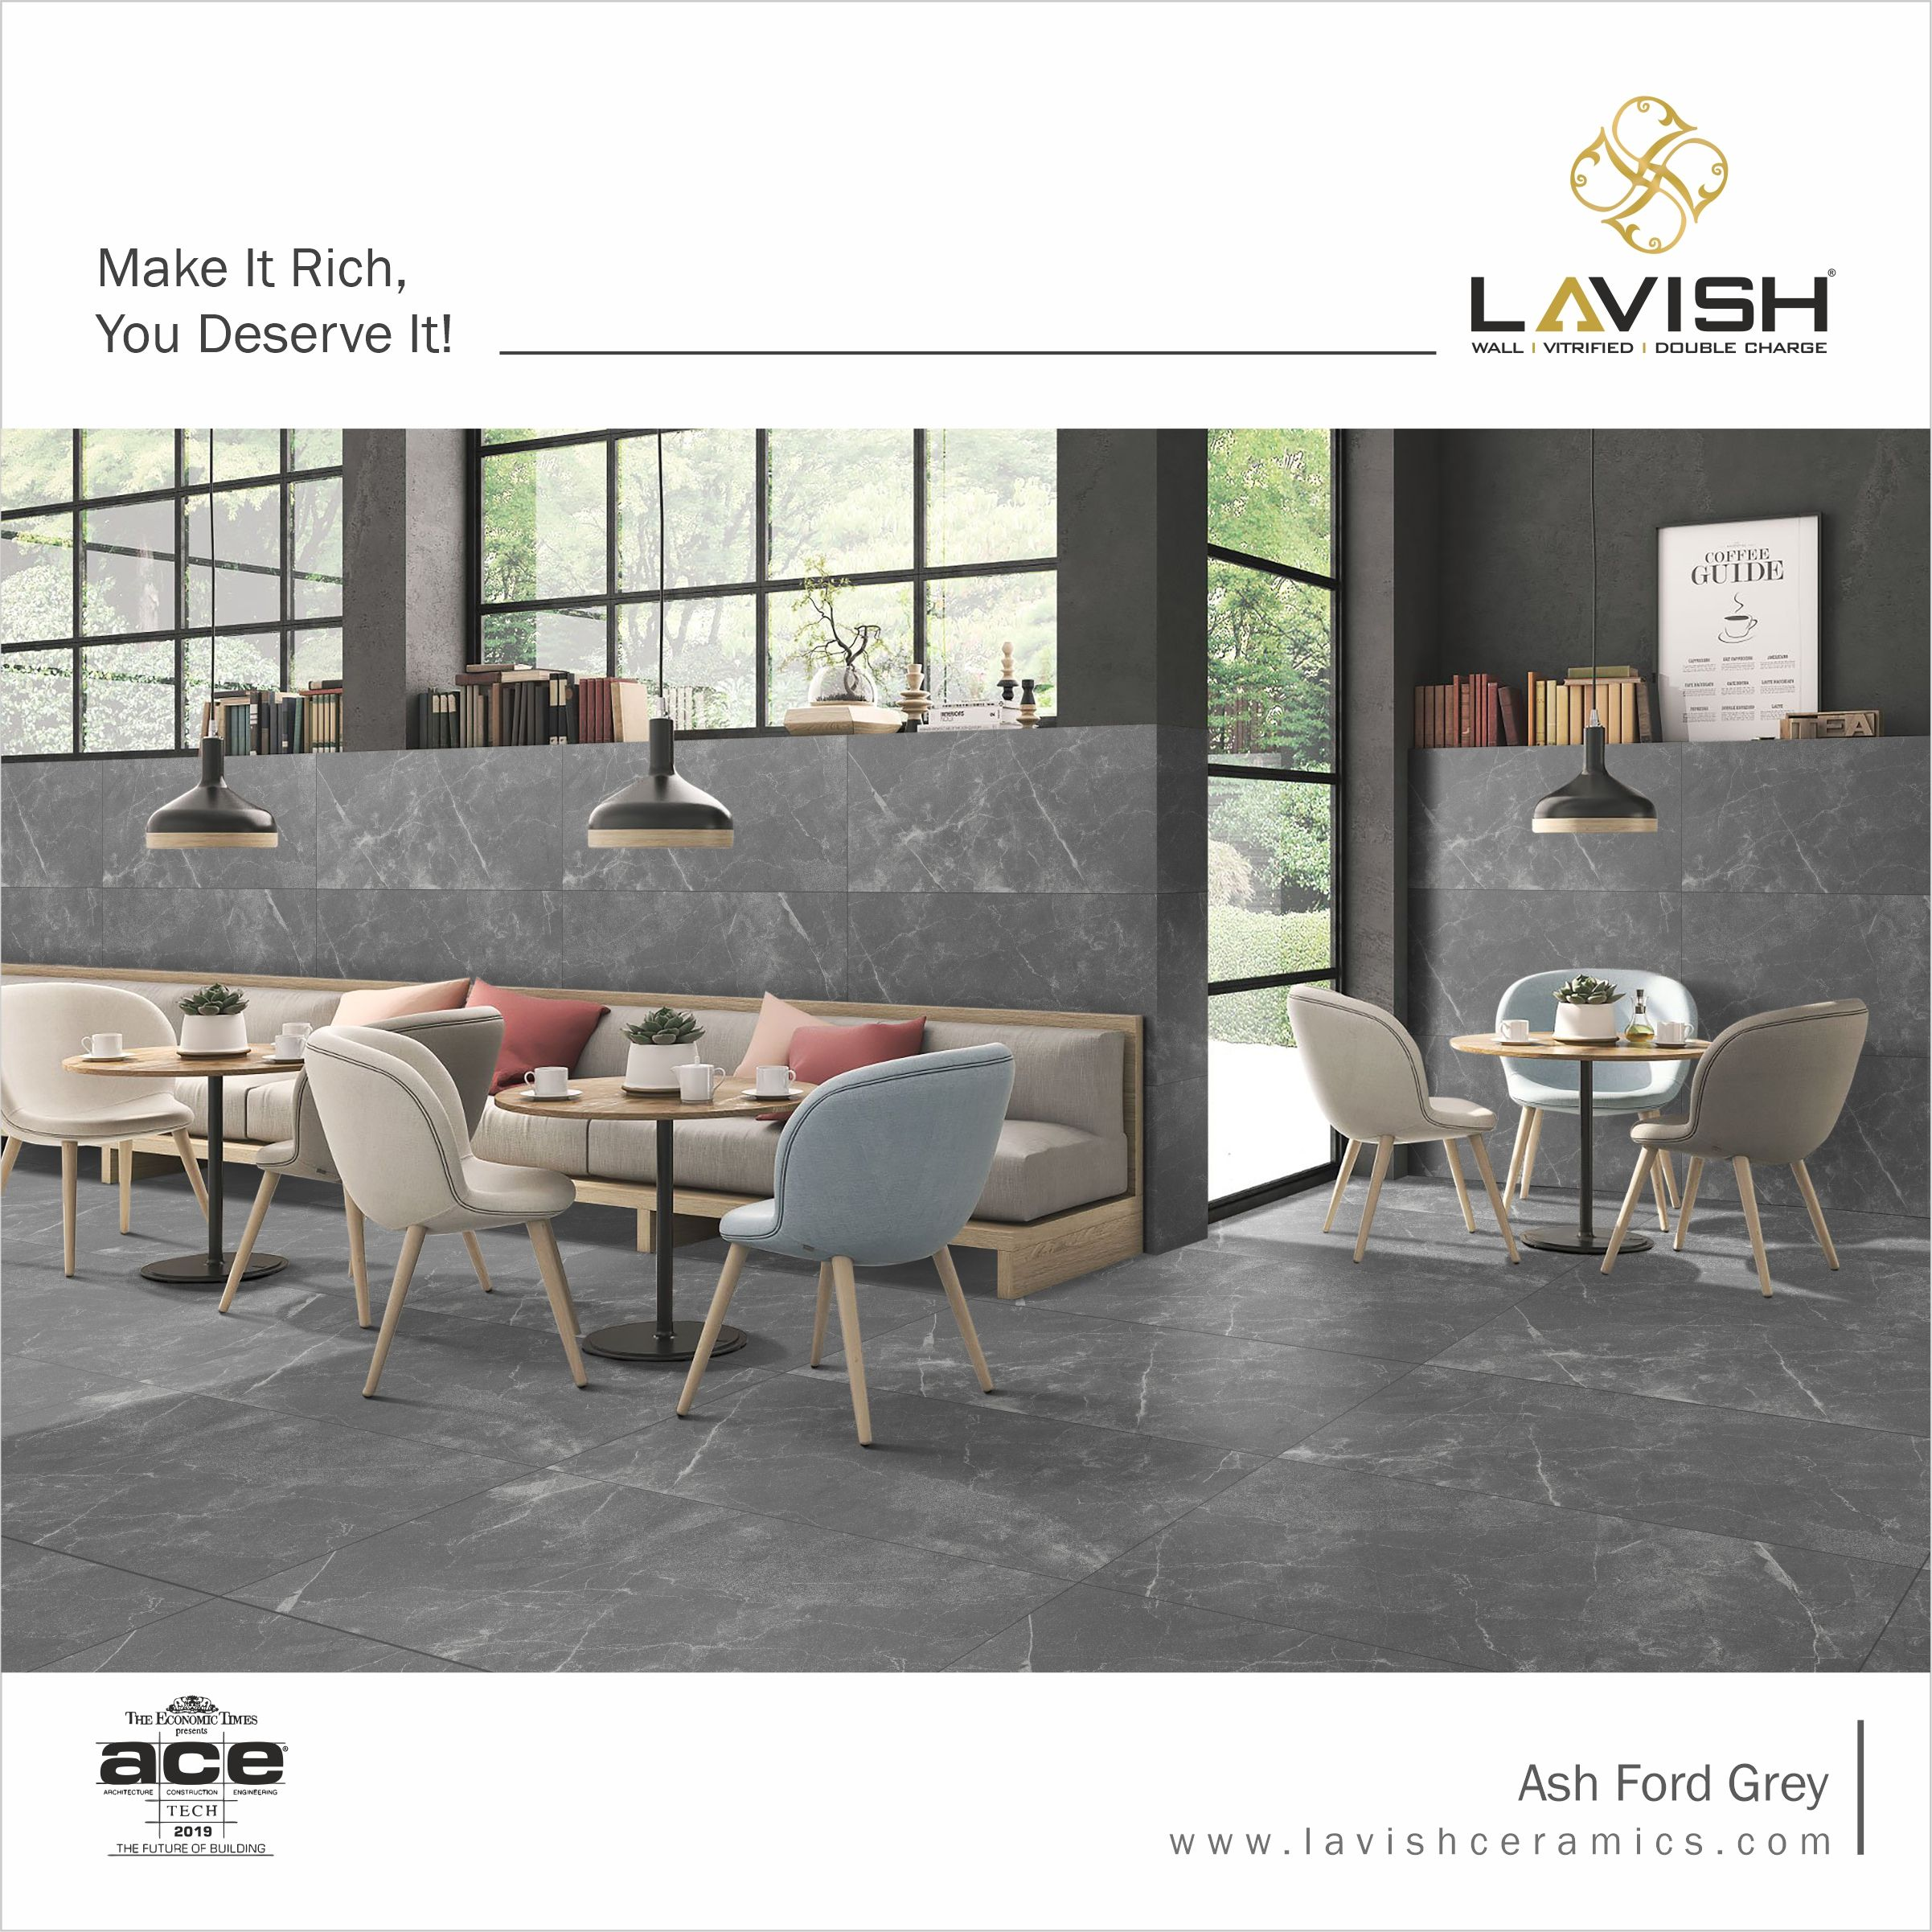 Make It Rich You Deserve It With Lavish Ceramics Presents New Design Of Ash Ford Grey Tiles Tile Manufacturers Ceramic Tiles Fabric Decor